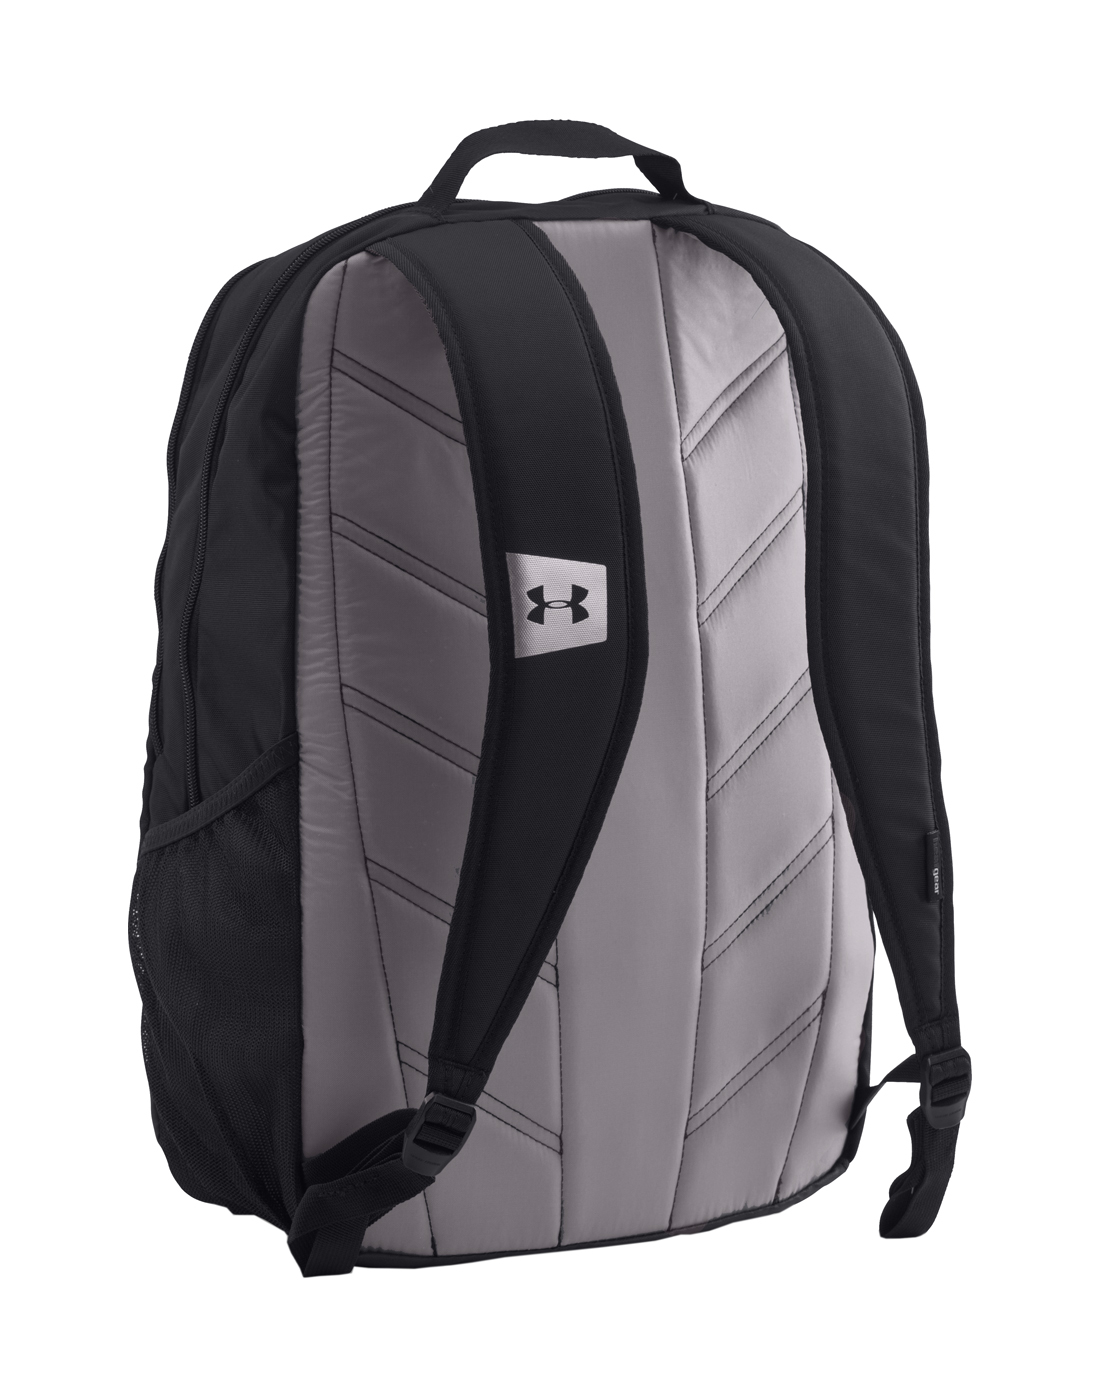 21733a5011 Under Armour Hustle Lite Backpack